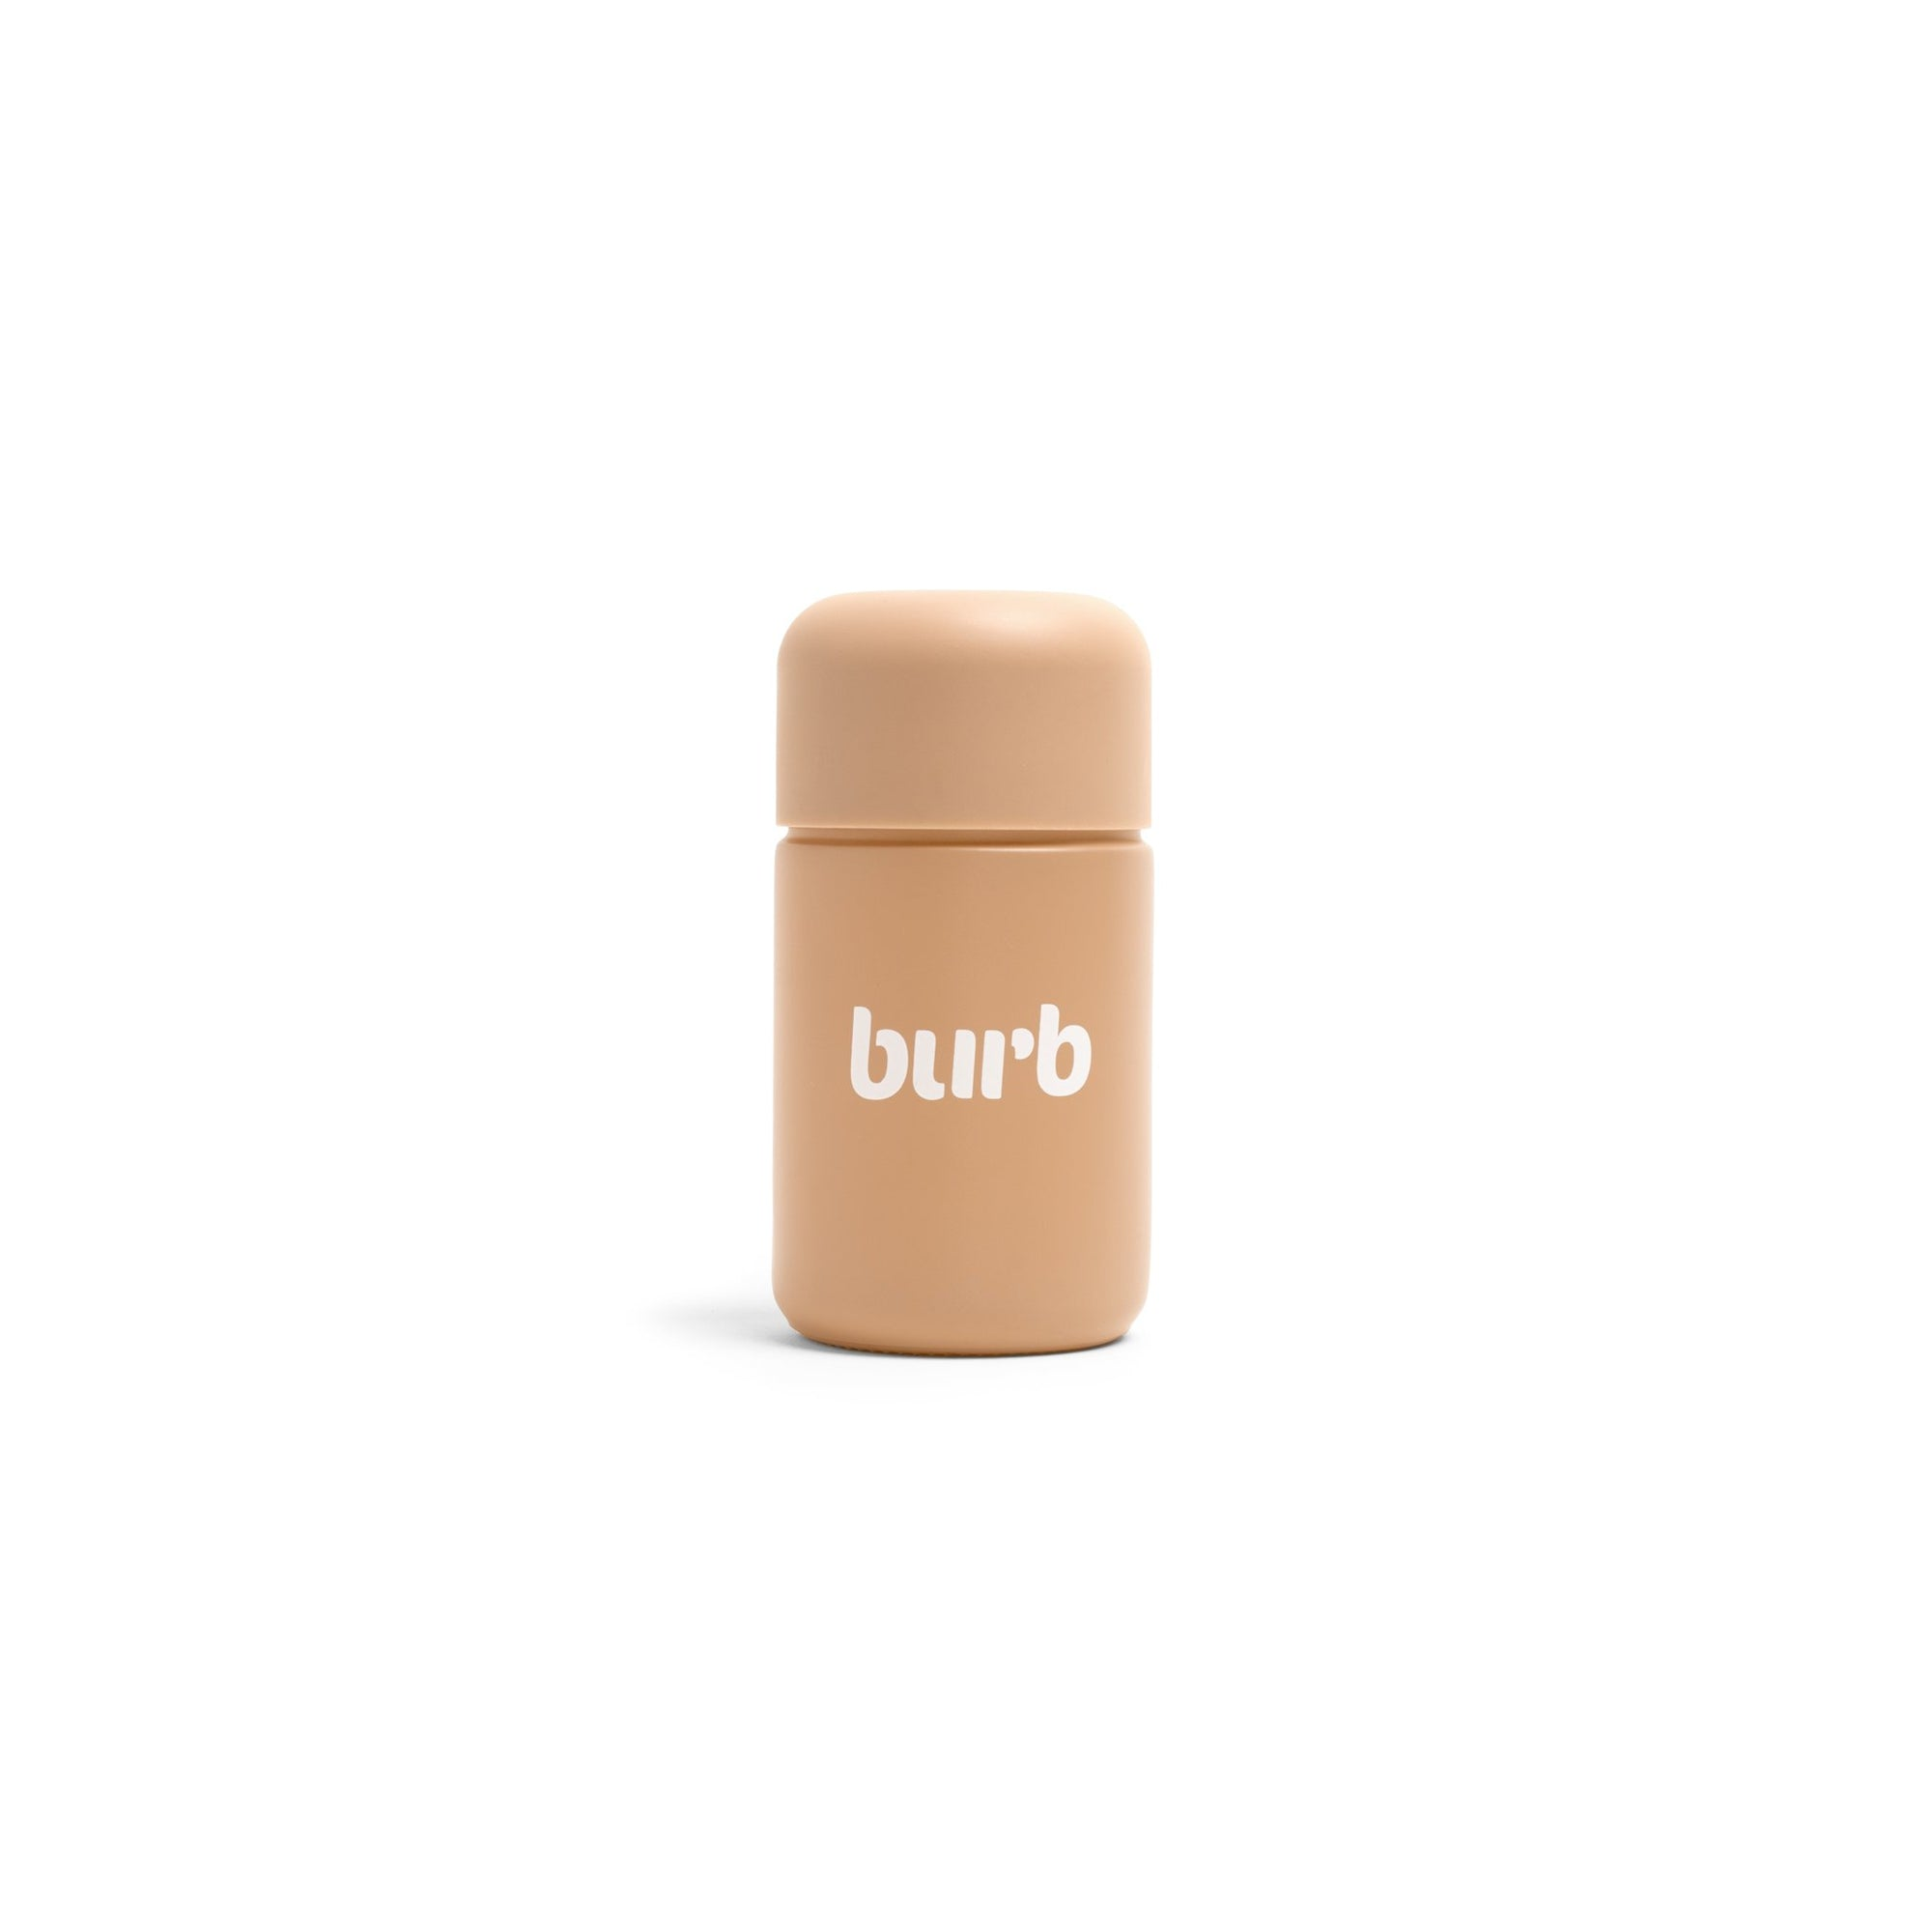 Burb Stash Jar